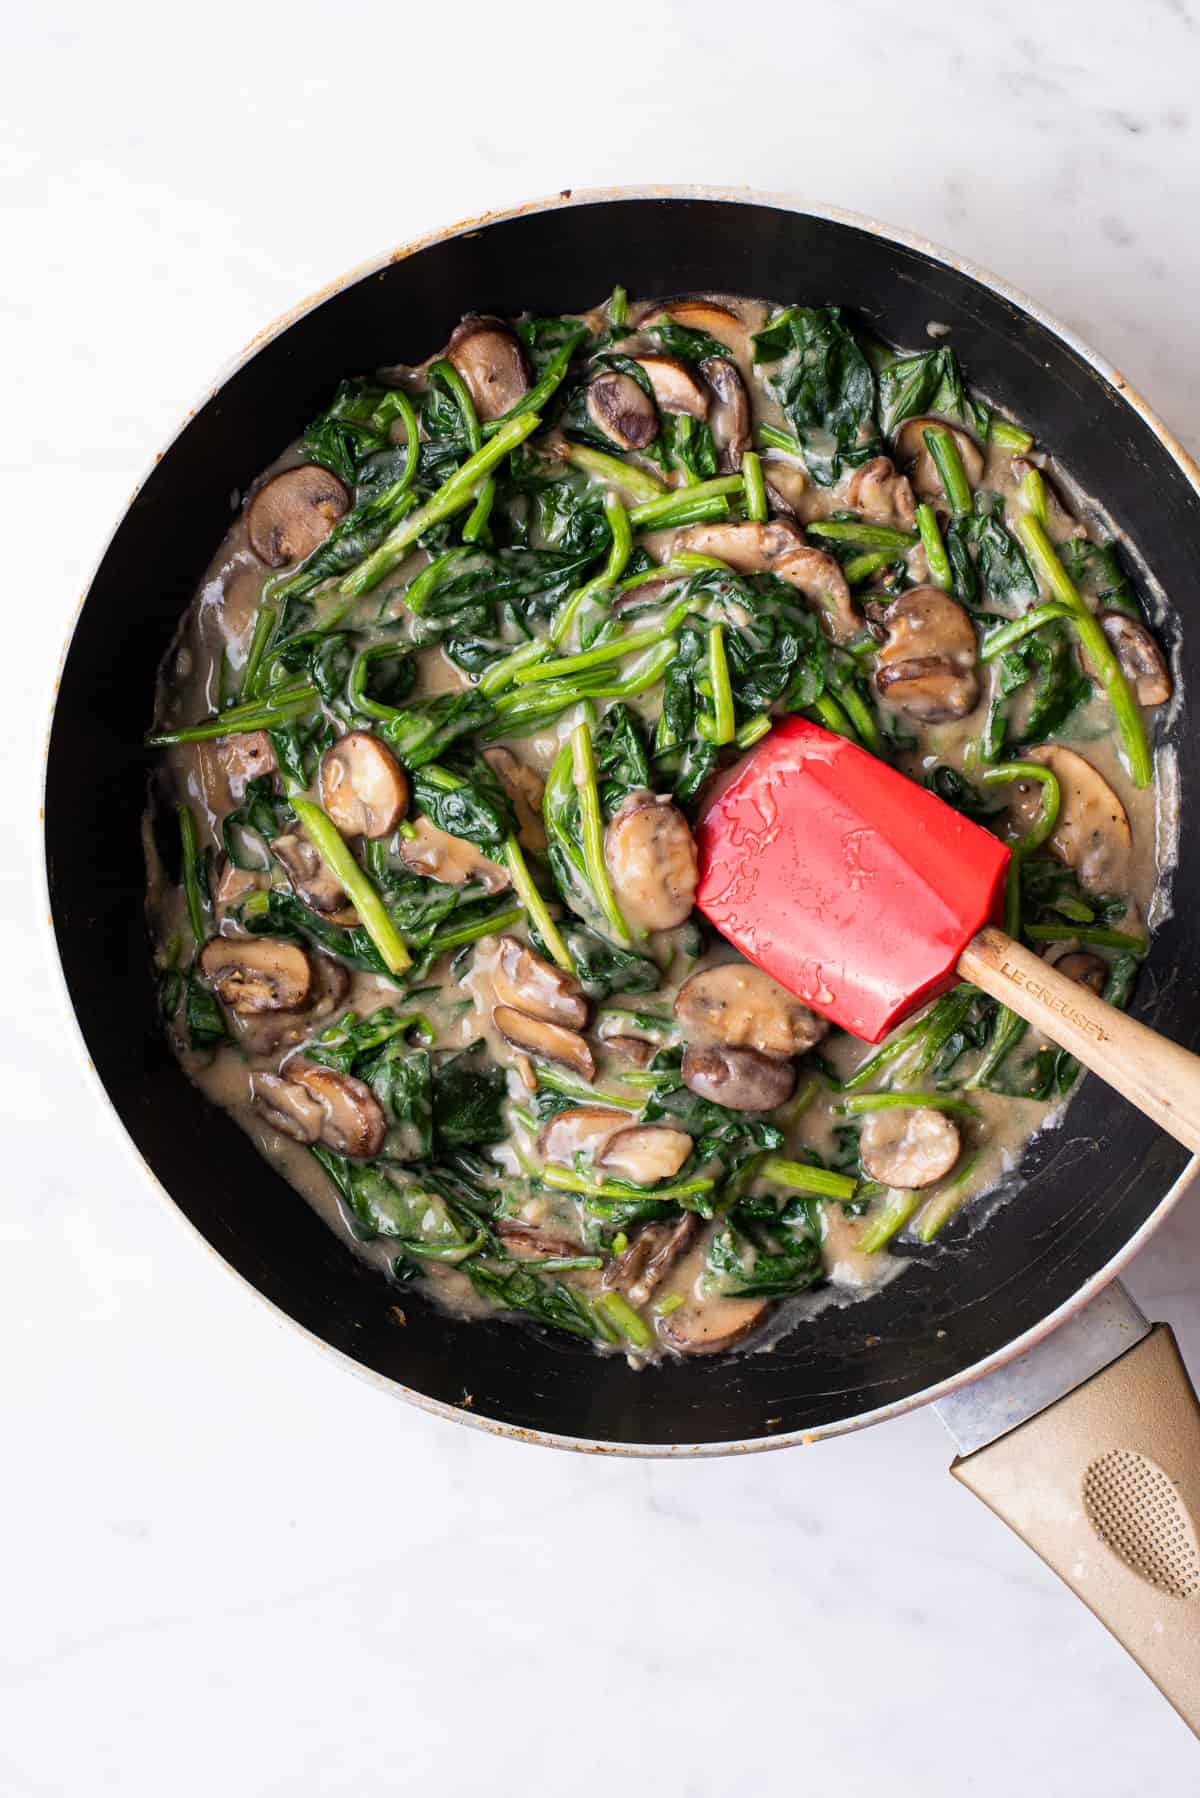 Vegan creamy spinach with mushrooms.